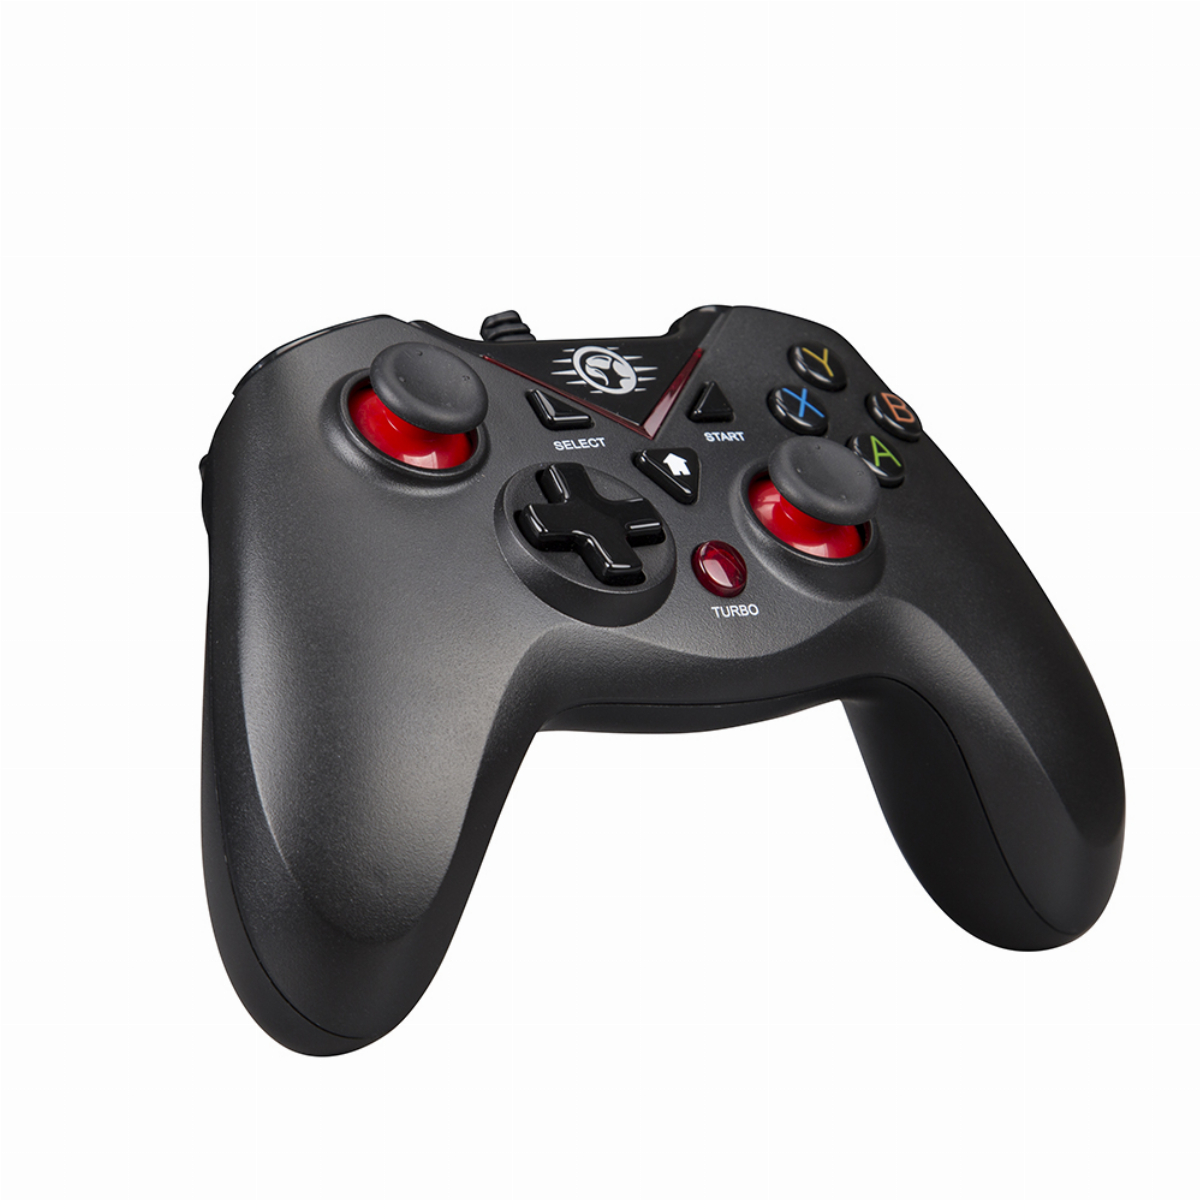 Marvo геймпад Gamepad GT-016 - USB/Vibration/PS3/PC/Android - MARVO-GT-016